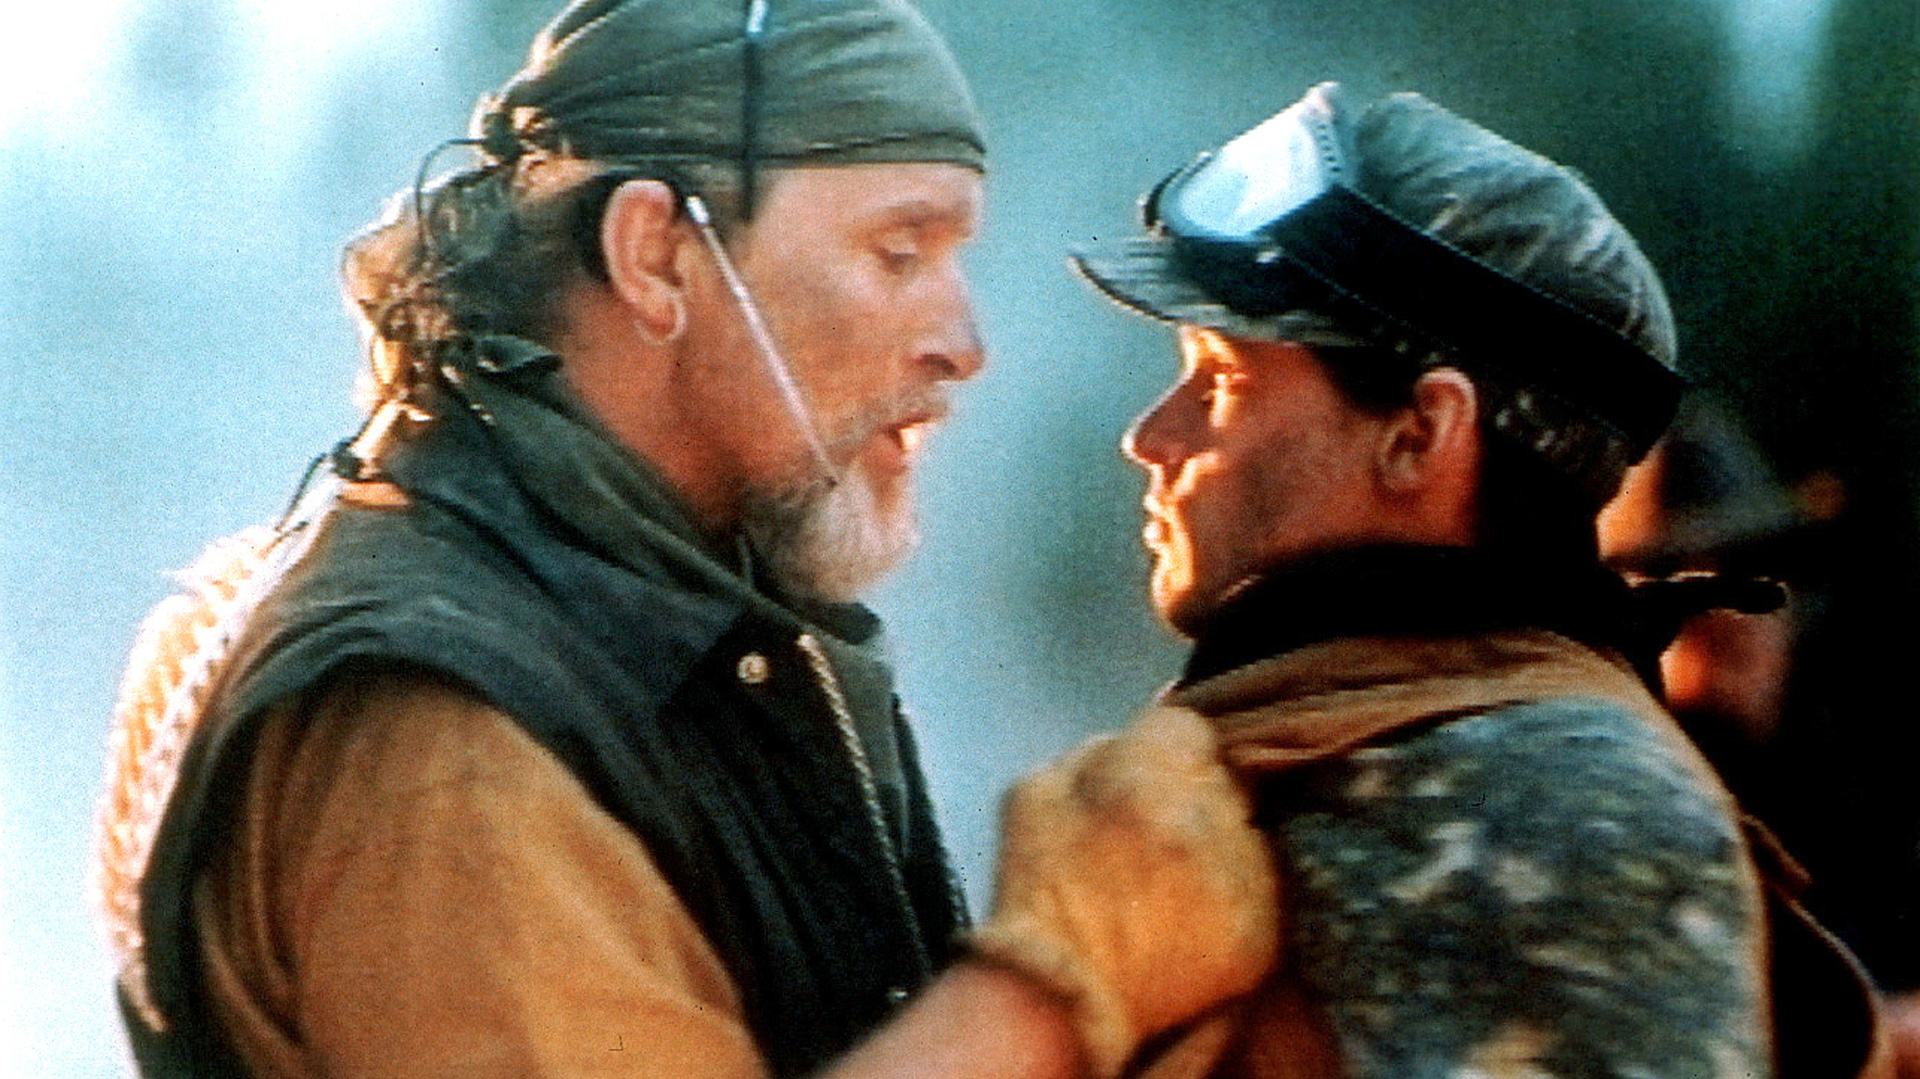 Ruger Hauer in Surviving the Game which is a movie starring Rutger Hauer, who's in Surviving the Game. Also other people, like Ice-T, who's not in this picture but who is in Surviving the Game with Rutger Hauer, who's still not as terrifying as Craigula.